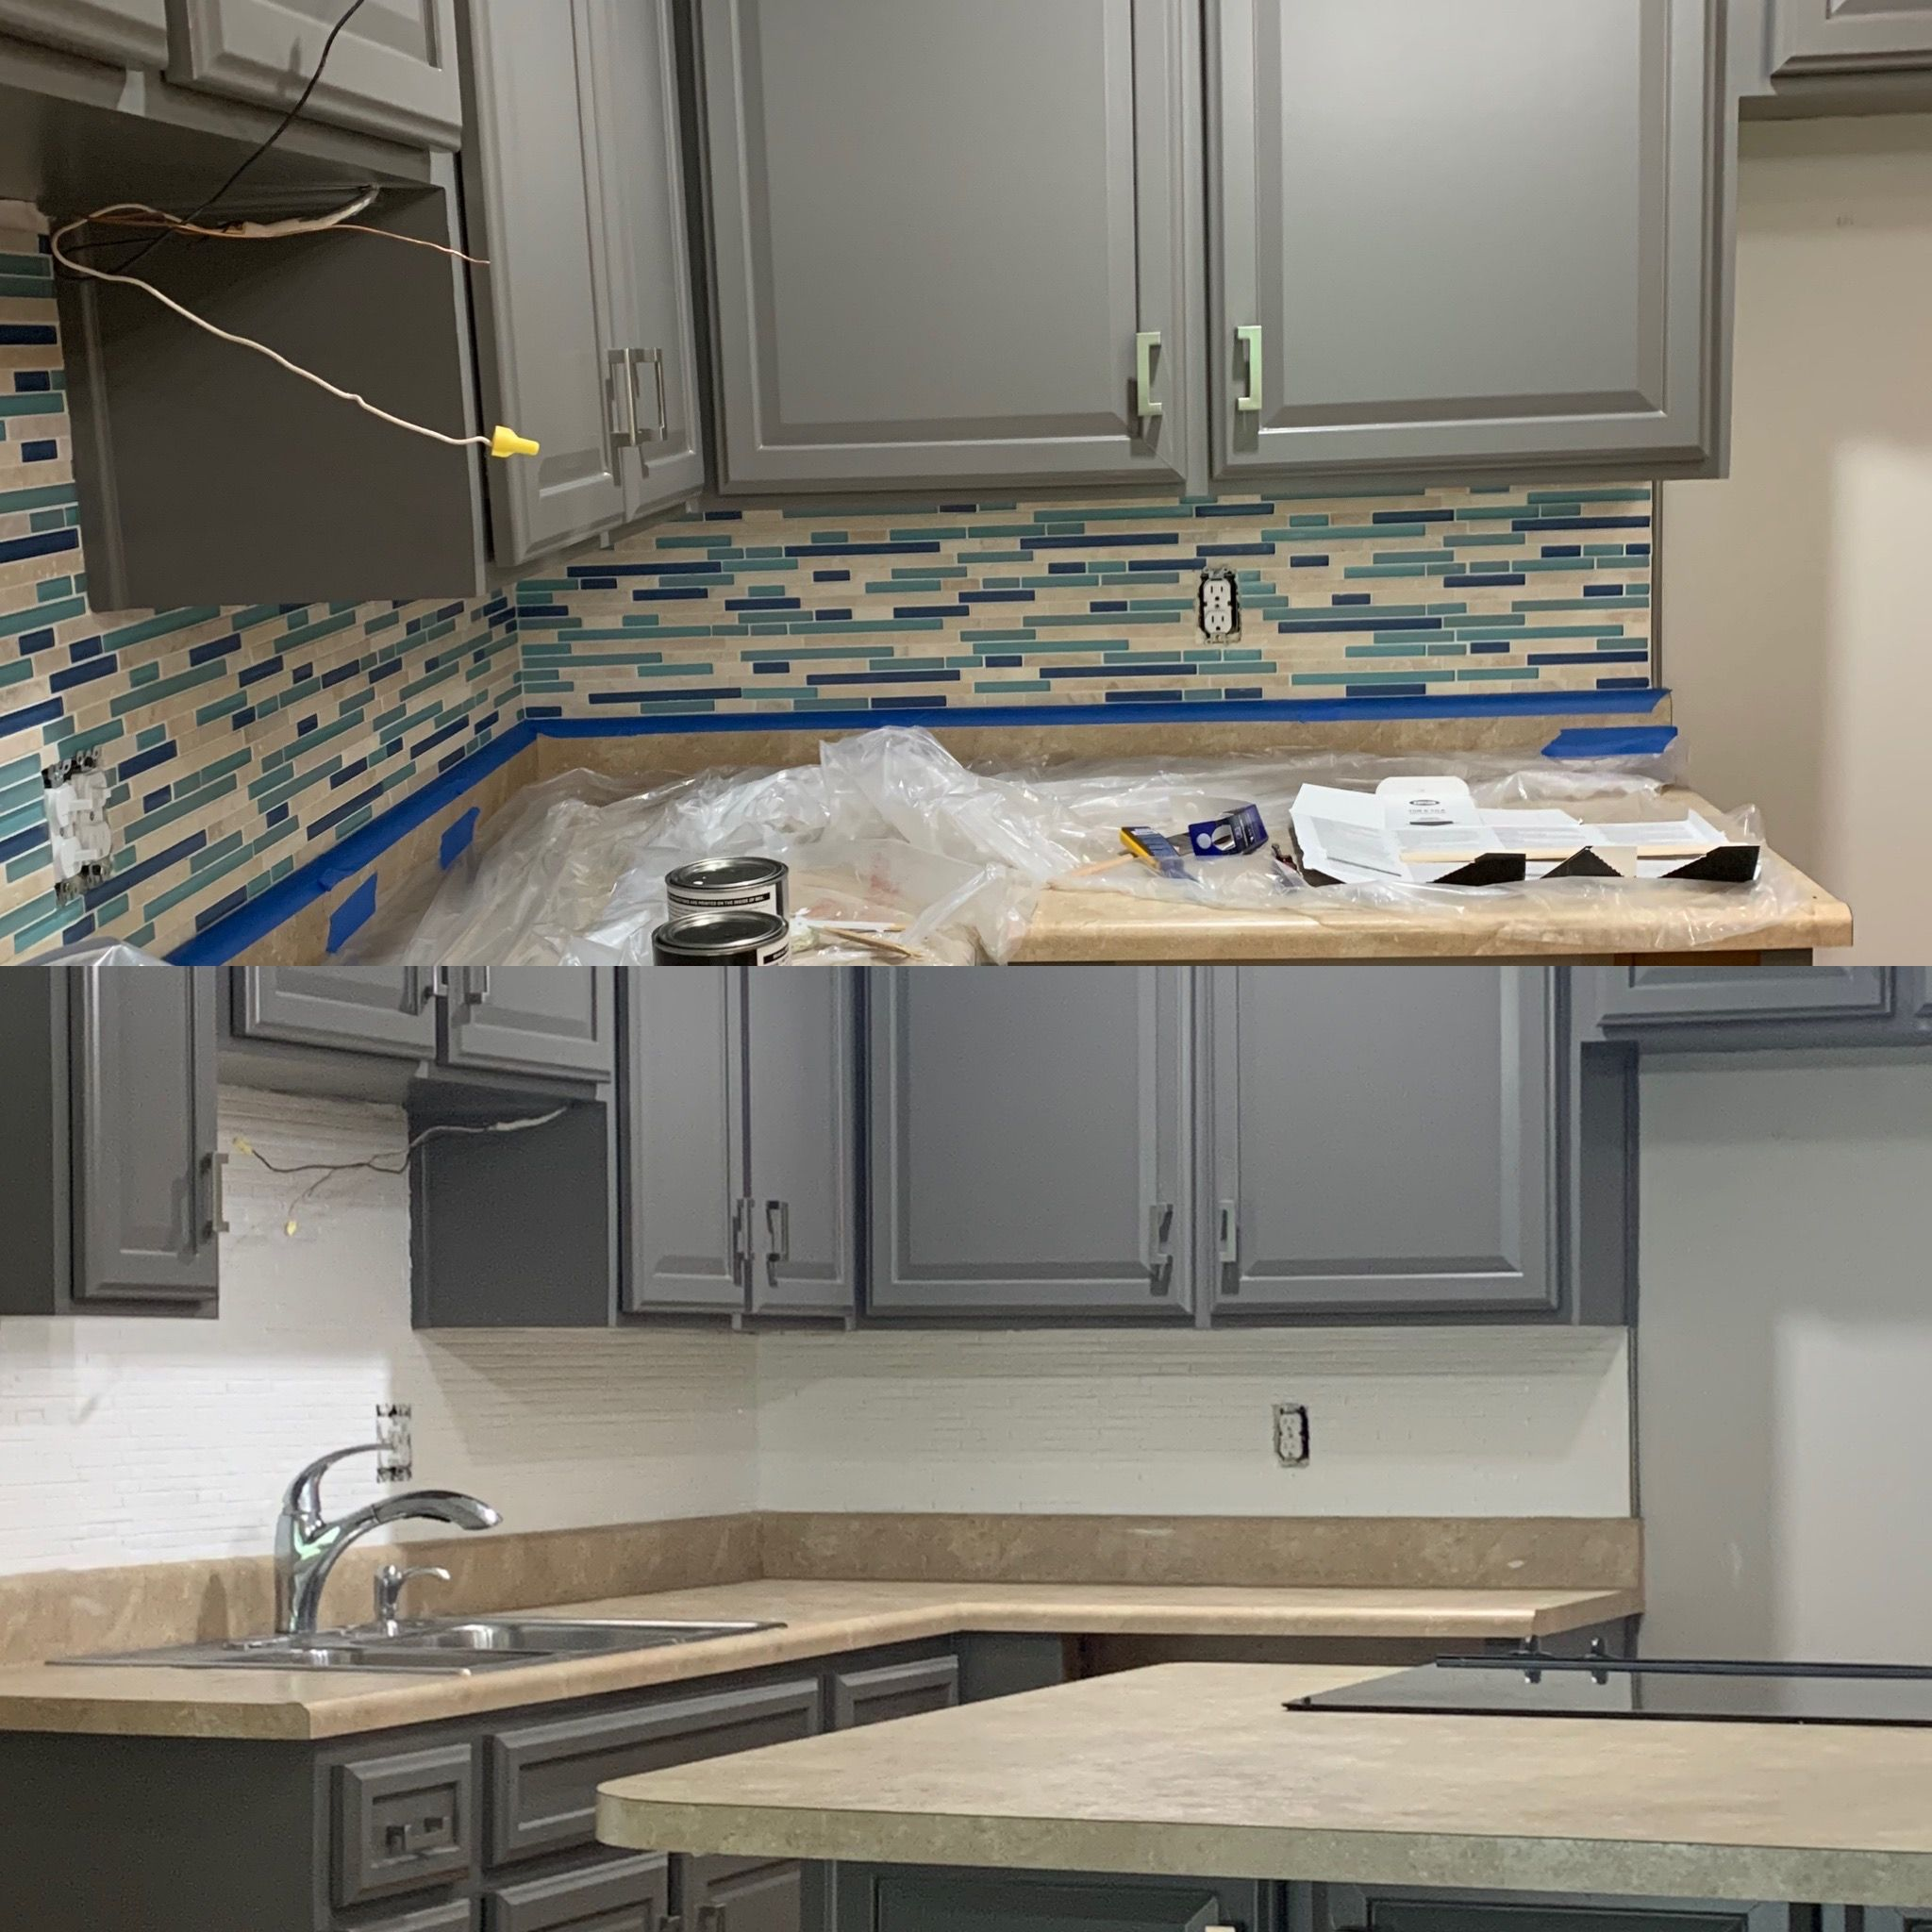 Pin By Lisa Carey On John House Reno 2020 In 2020 Kitchen Cabinets Home Reno House